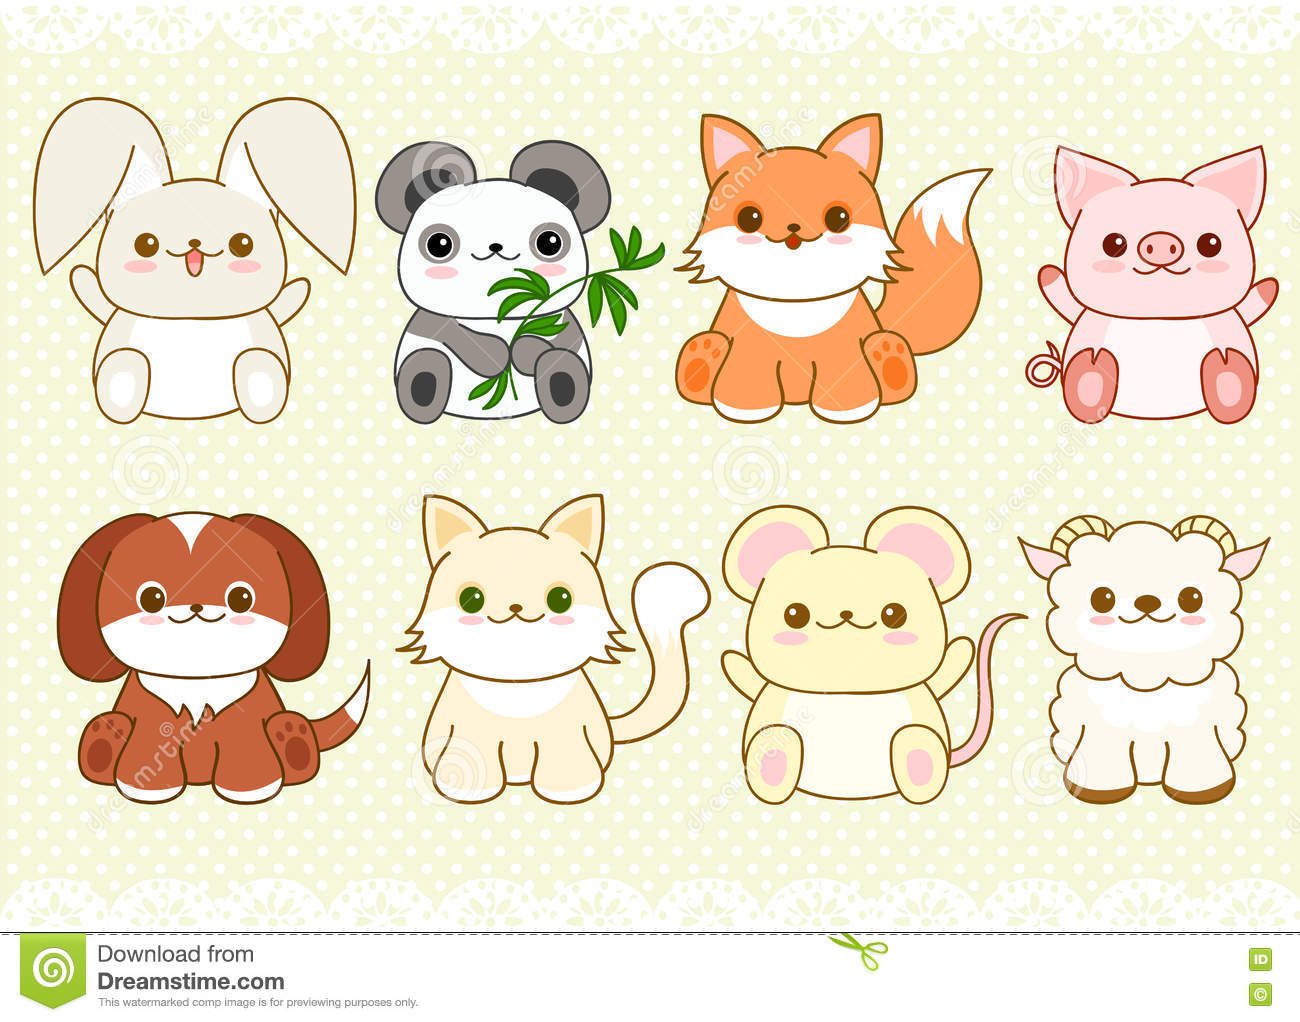 Cute Baby Pig Wallpaper Set Of Cute Baby Animals In Kawaii Style Stock Vector